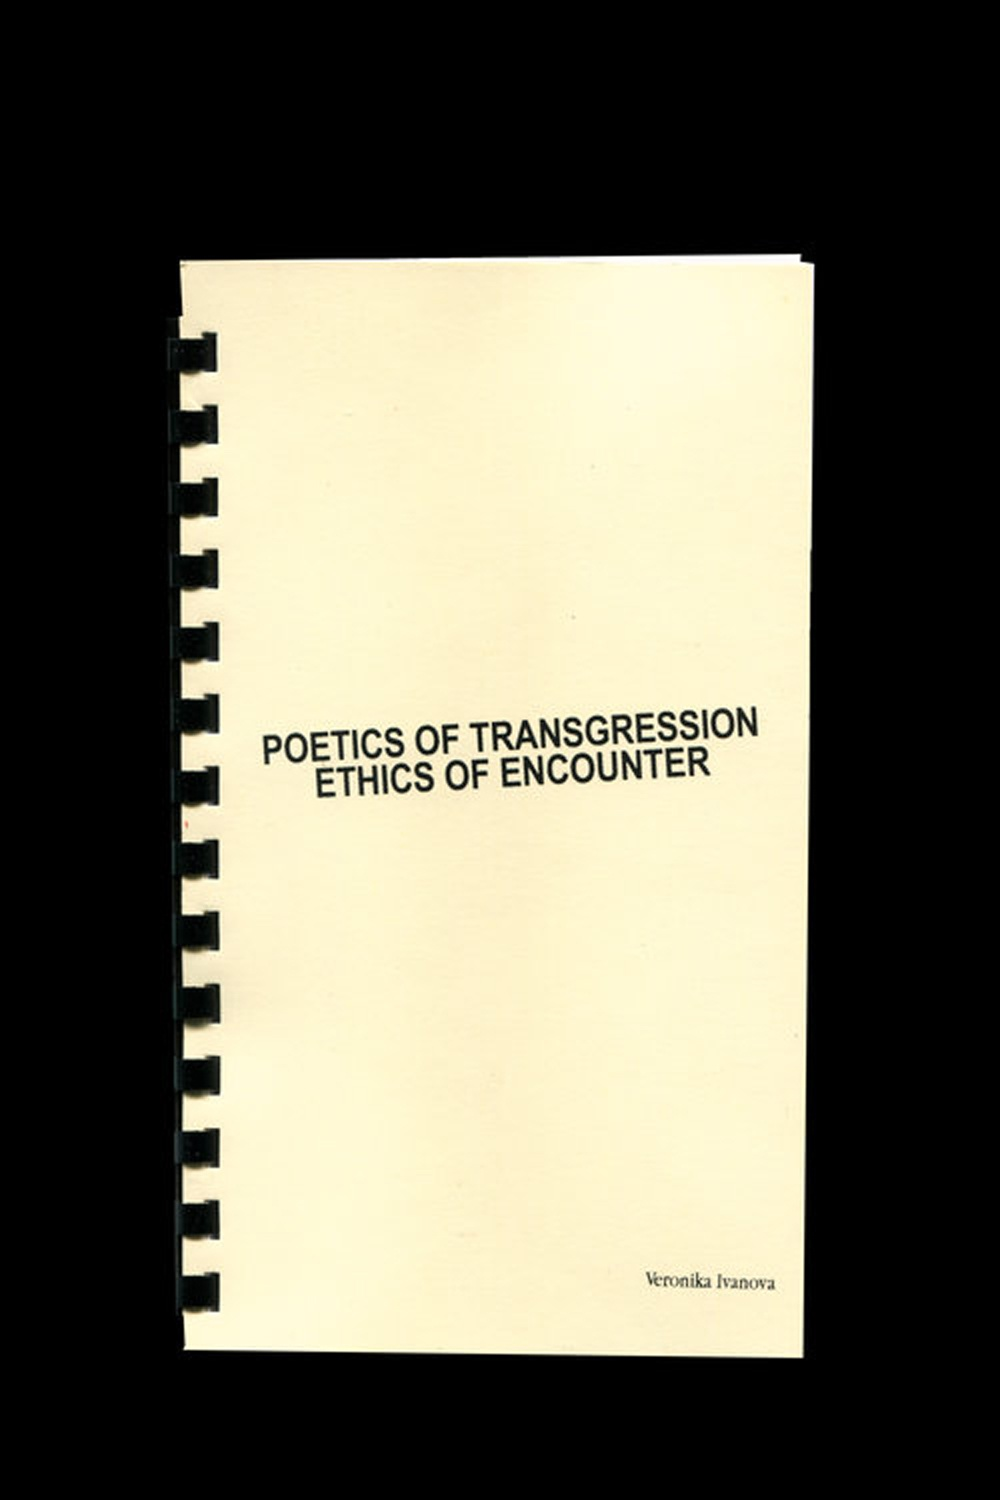 Poetics of Transgression: Ethics of Encounter